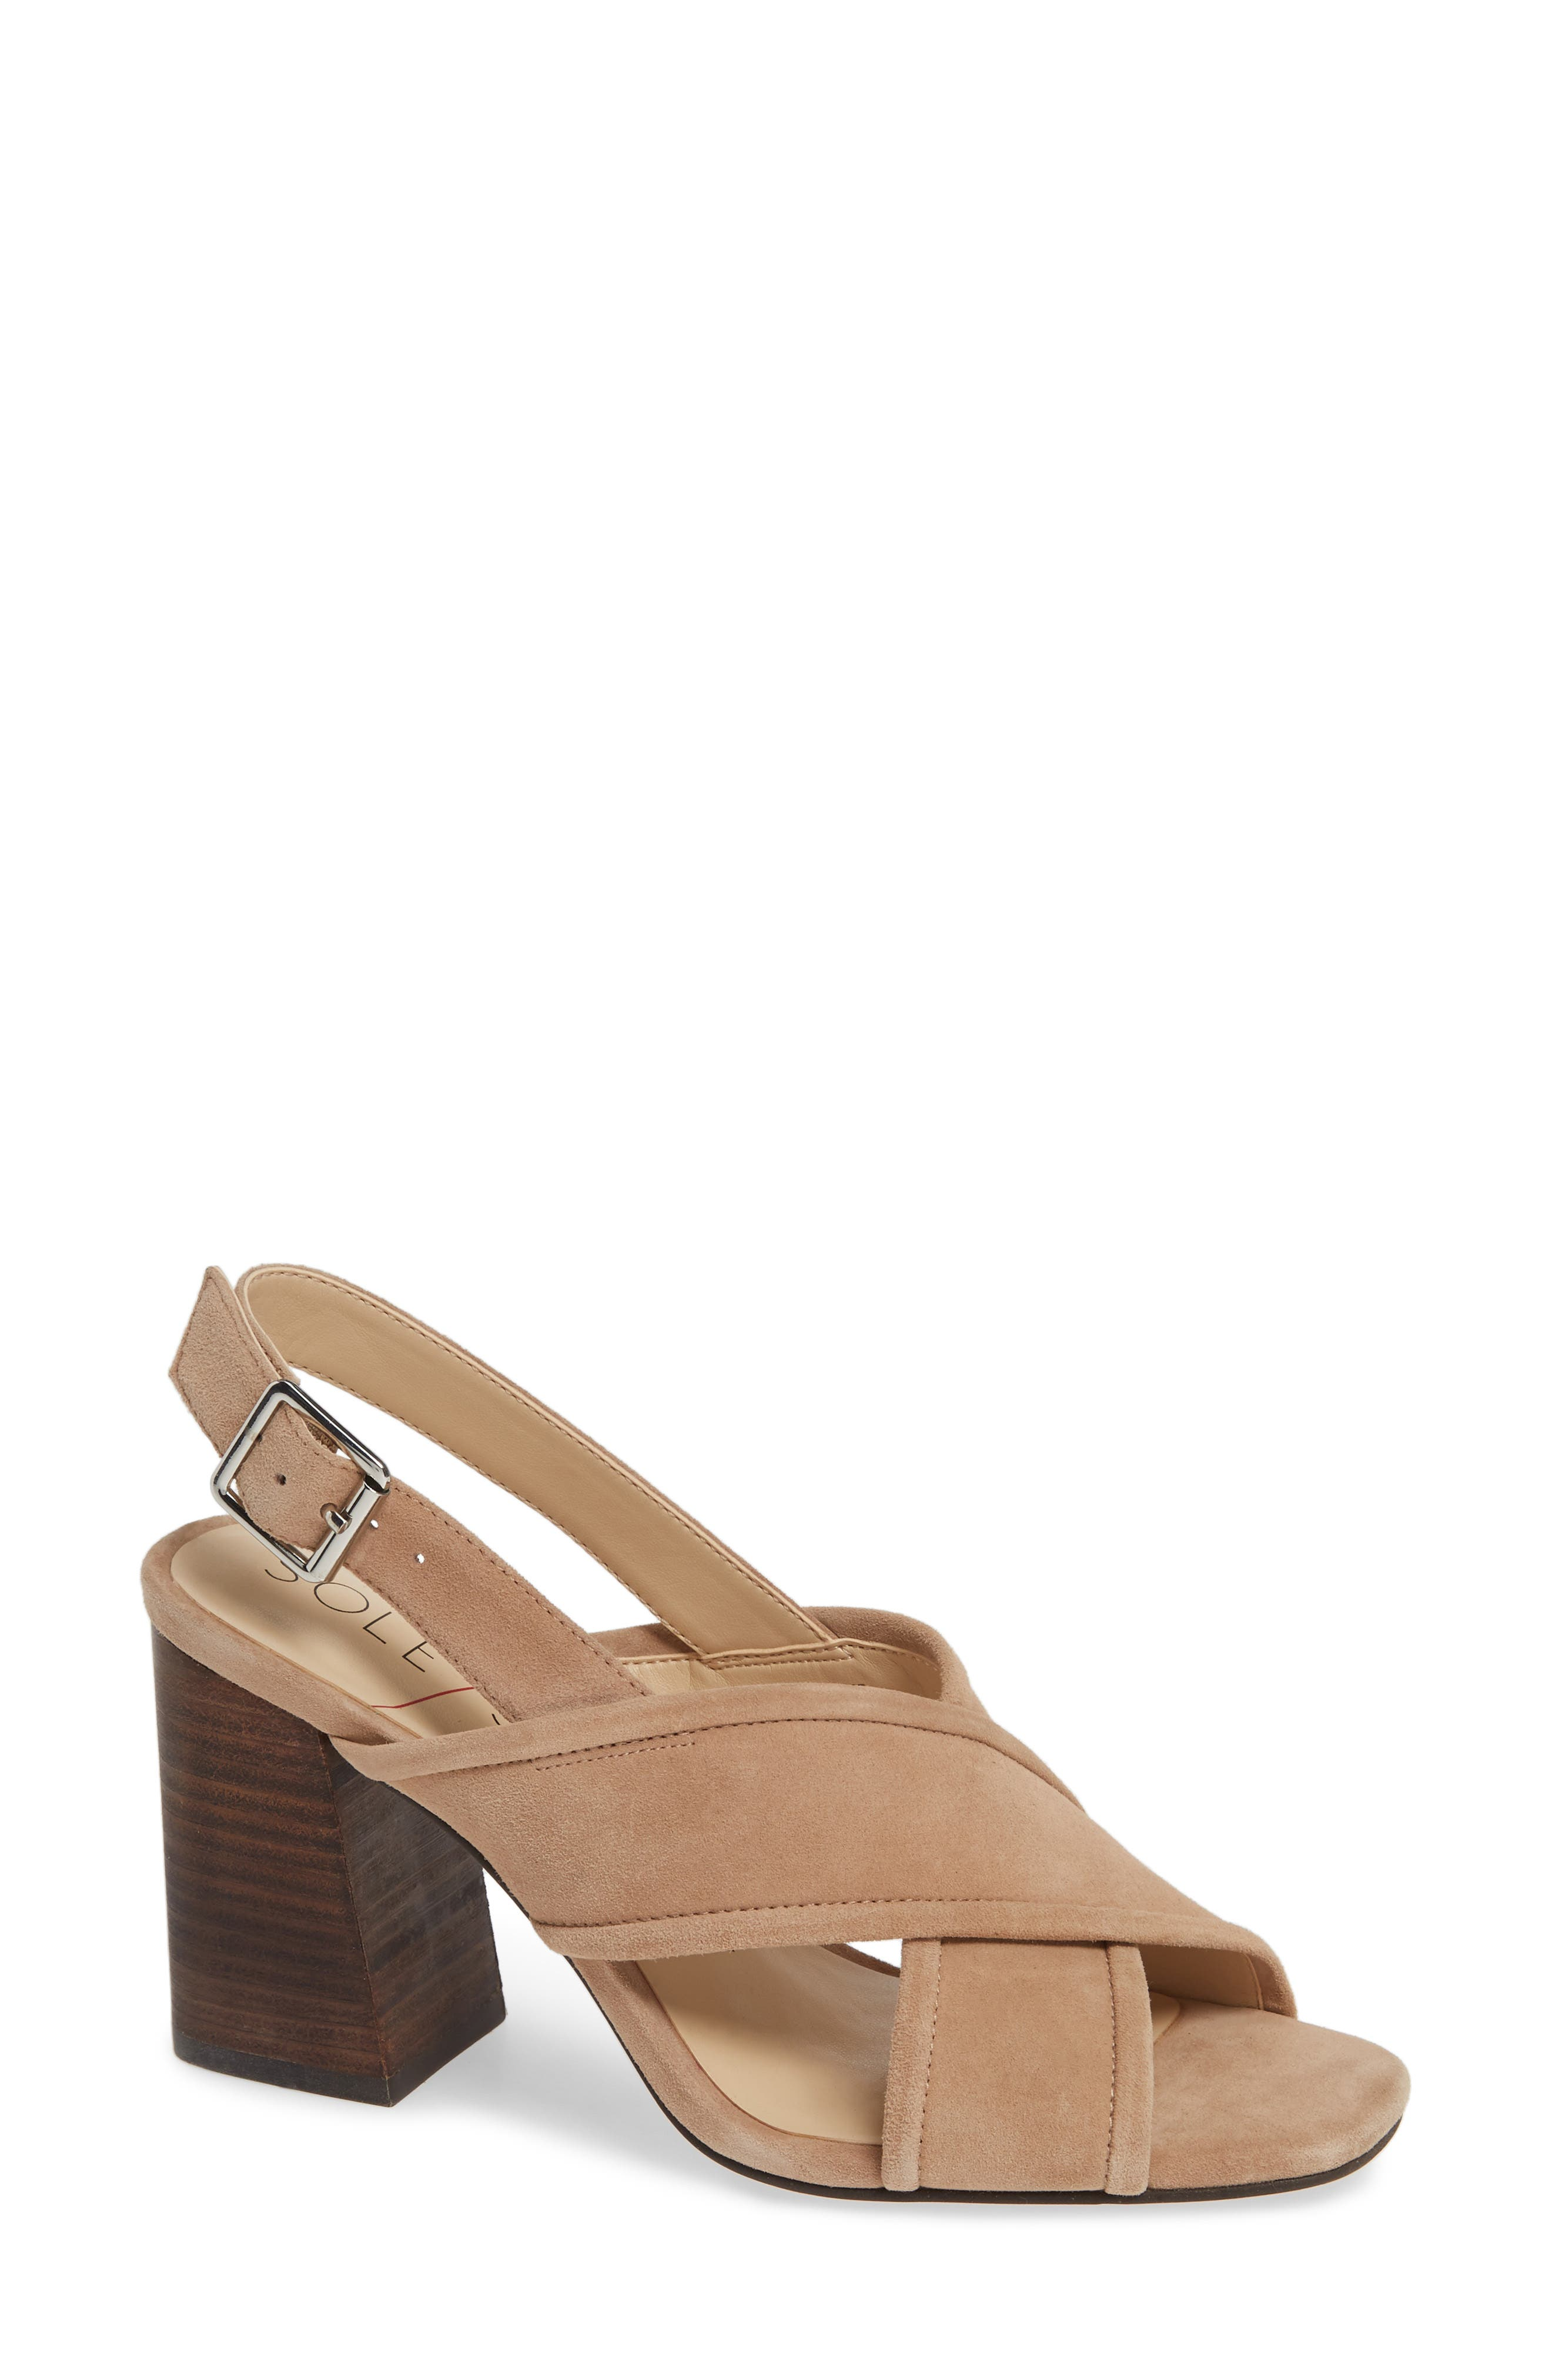 SOLE SOCIETY, Joree Slingback Sandal, Main thumbnail 1, color, DUSTED TAUPE SUEDE